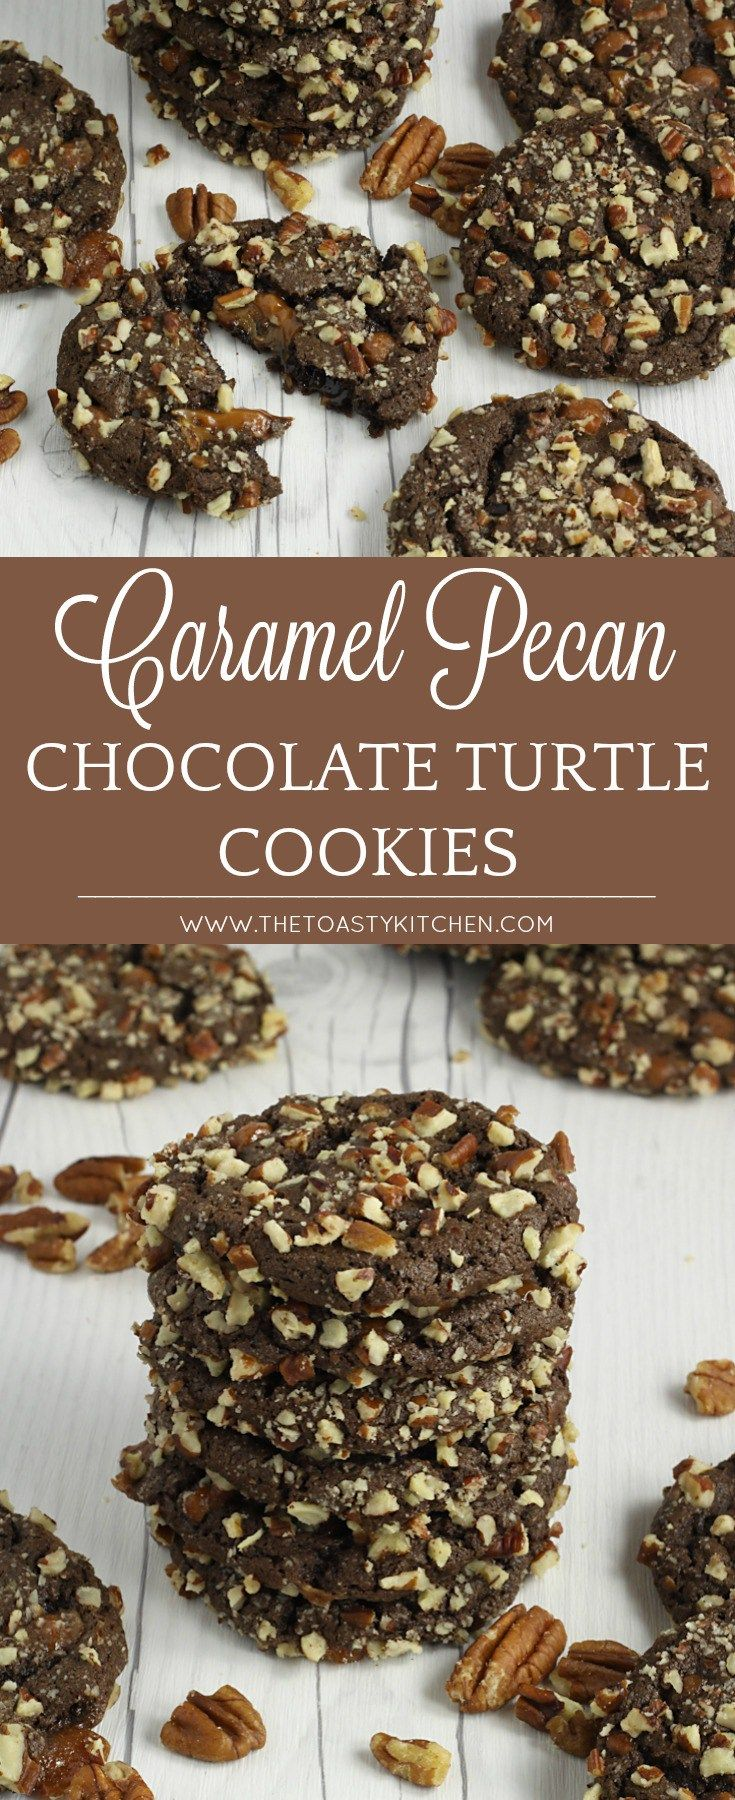 Caramel and Pecan Chocolate Turtle Cookies by The Toasty Kitchen